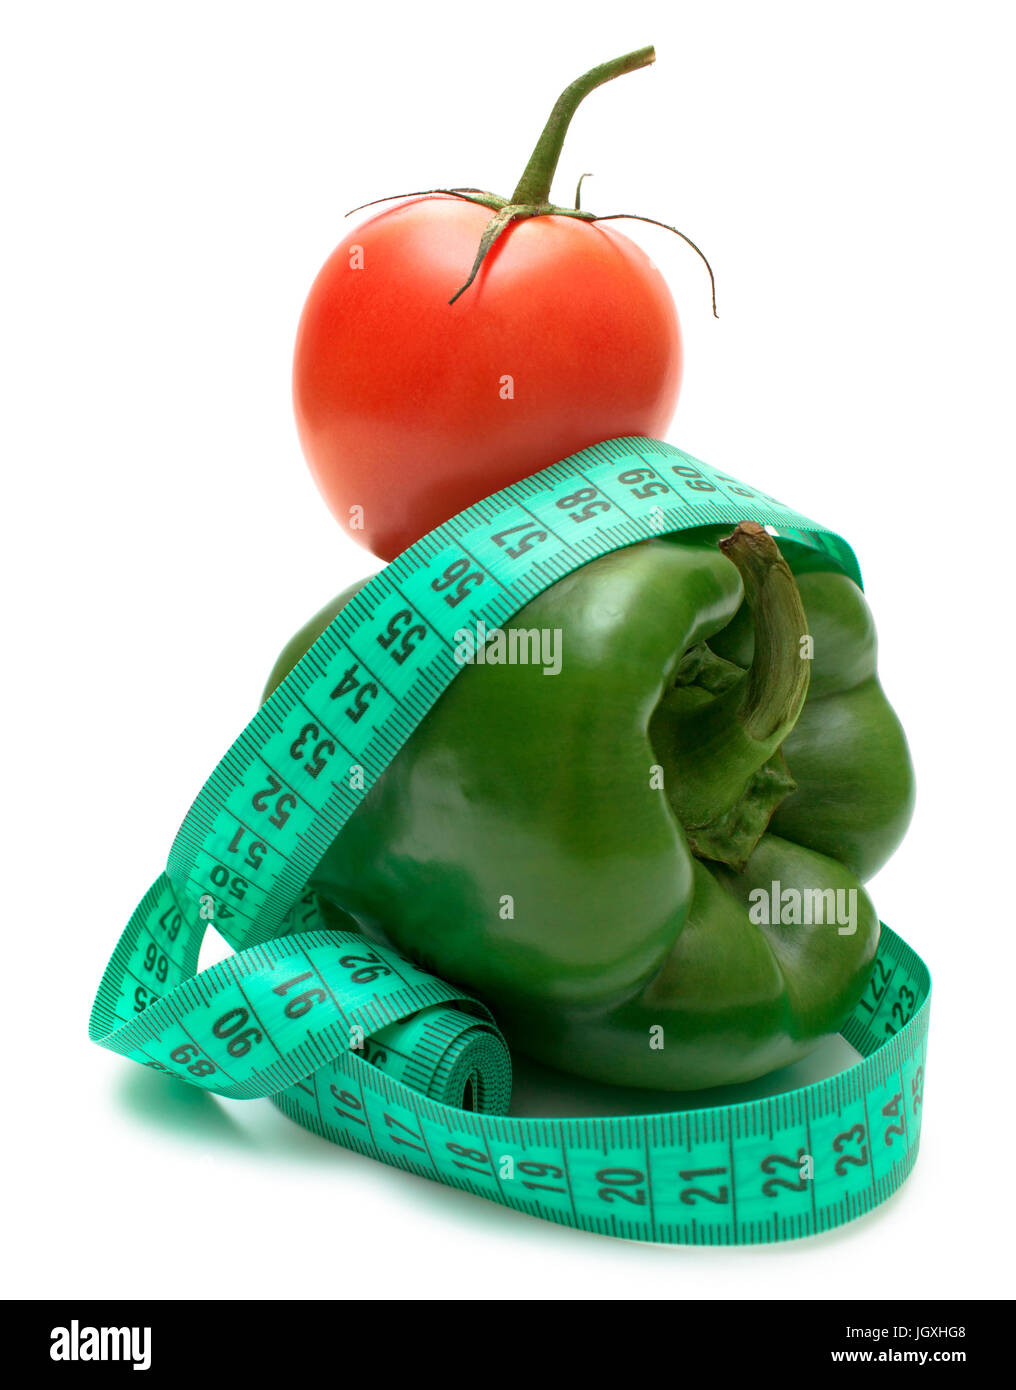 Ideal diet pair green bell peppers (bulgarian) and tomato isolated on white. - Stock Image